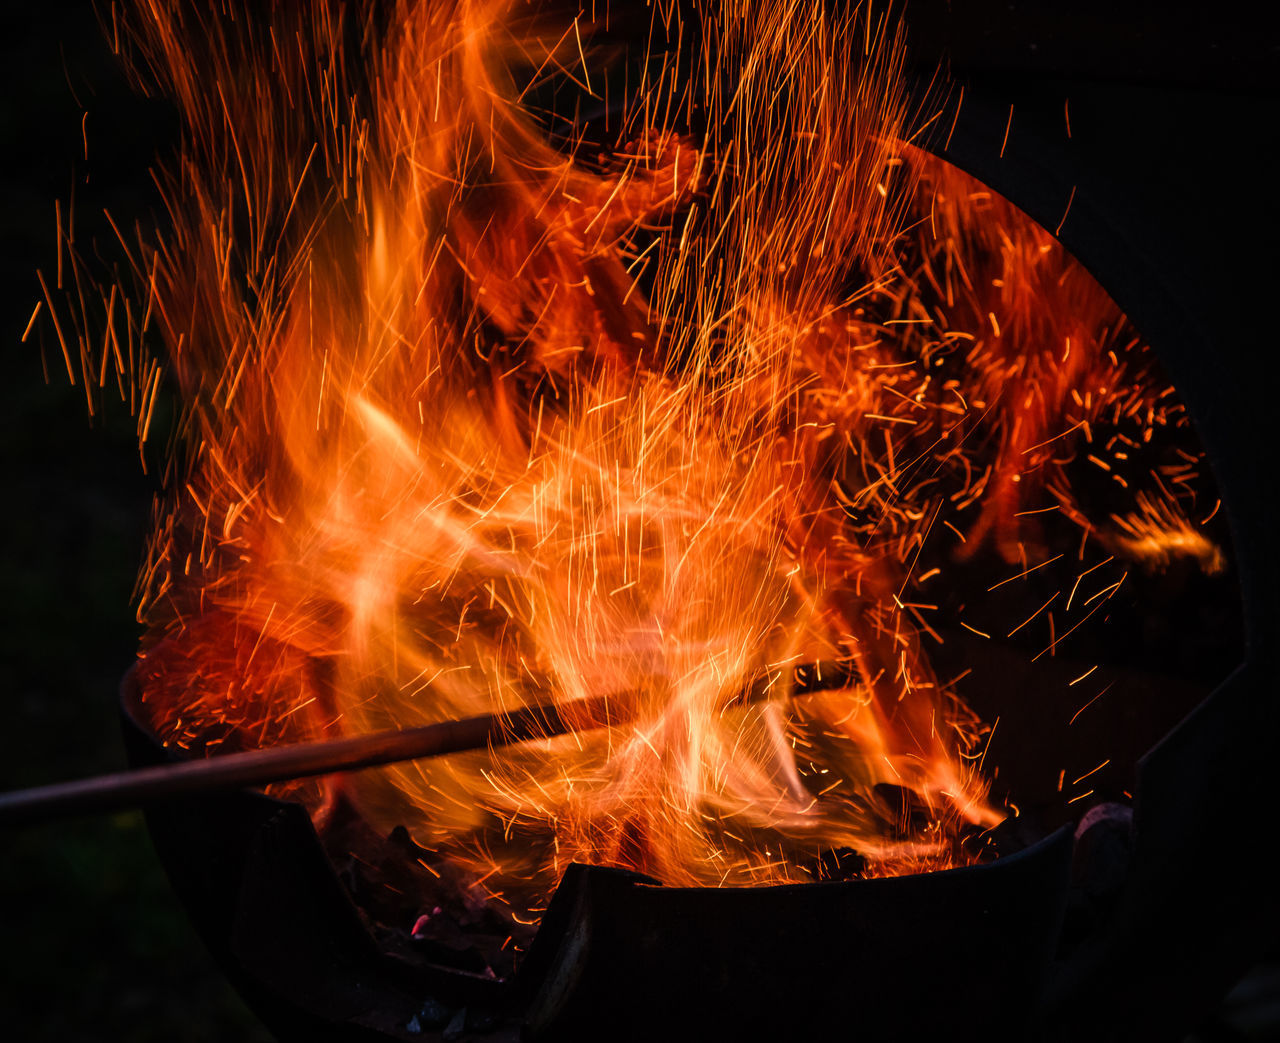 Black Backdrop Black Background Burning Close-up Fire Flame Heat - Temperature Night No People Outdoors Sparks Sparks Fly Sparks Flying